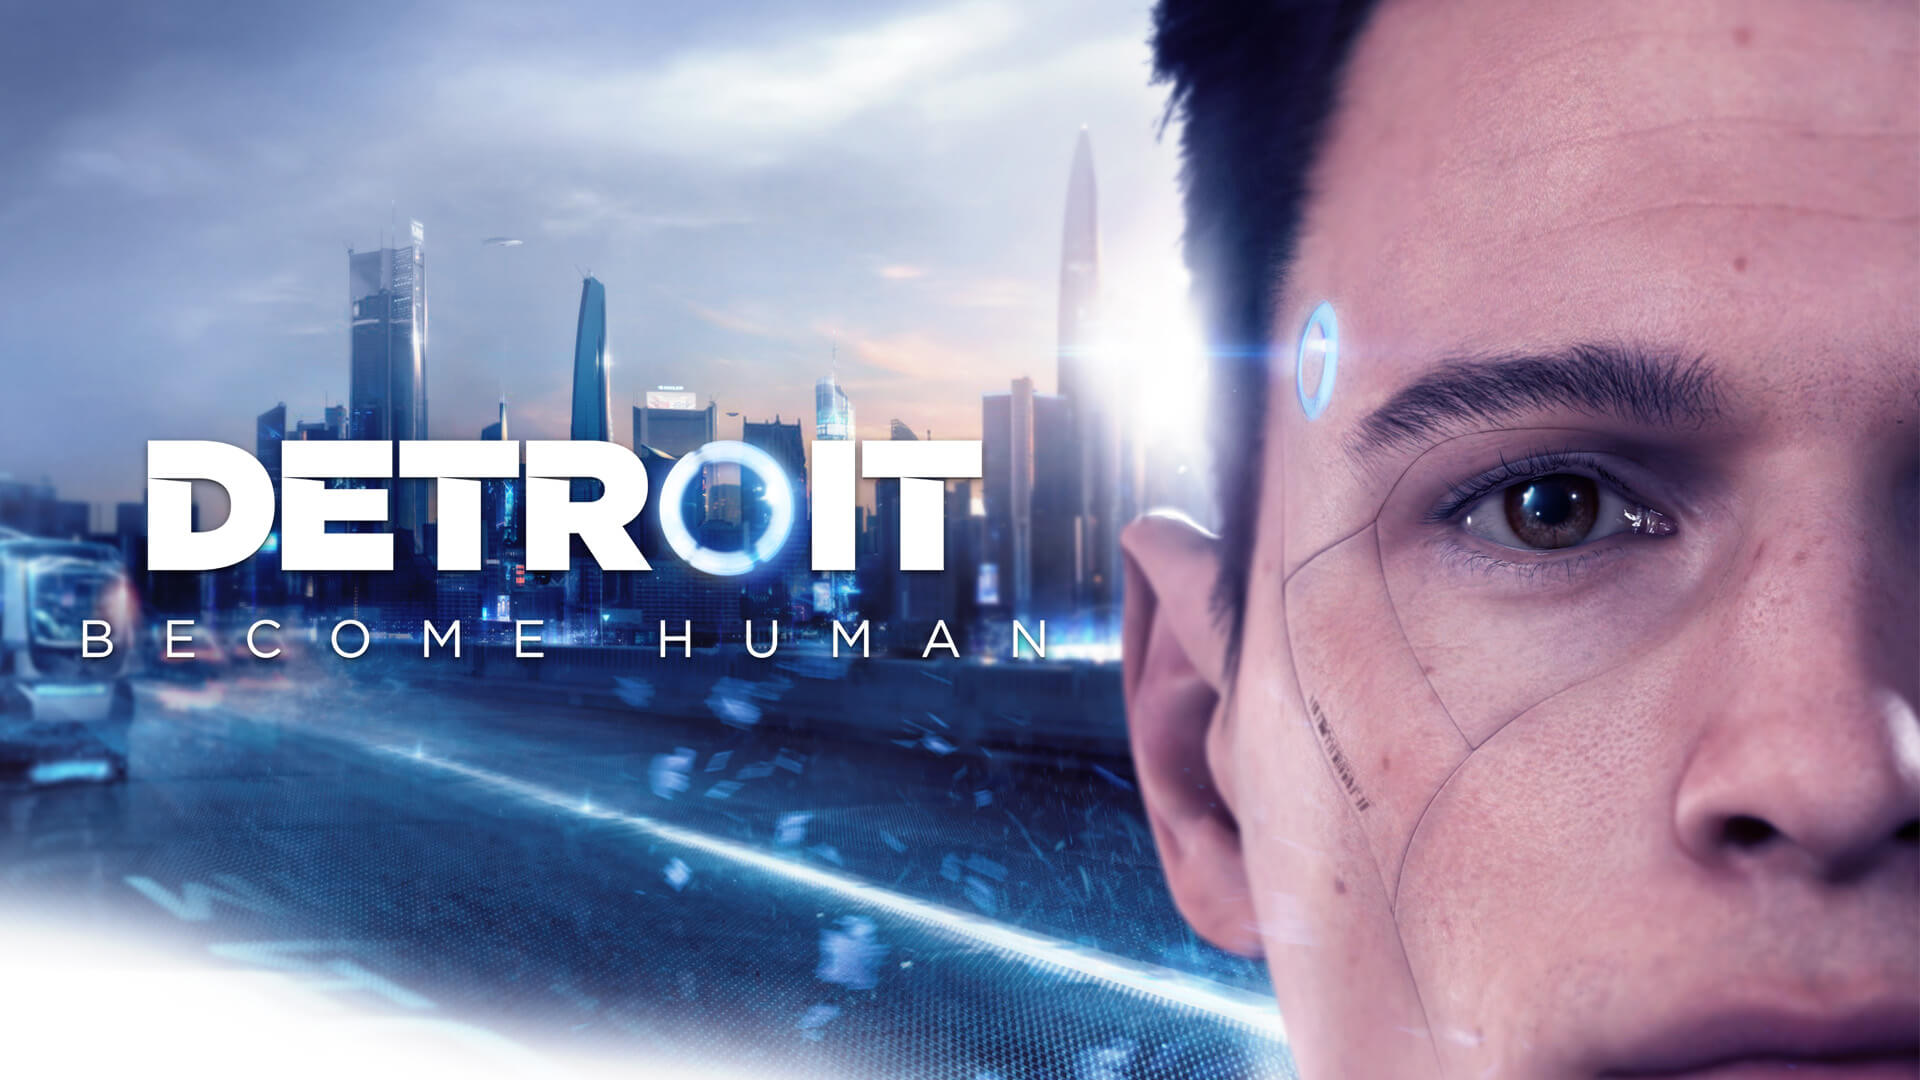 Download Detroit Become Human-CODEX + Update v20200805-CODEX +  Crack Only